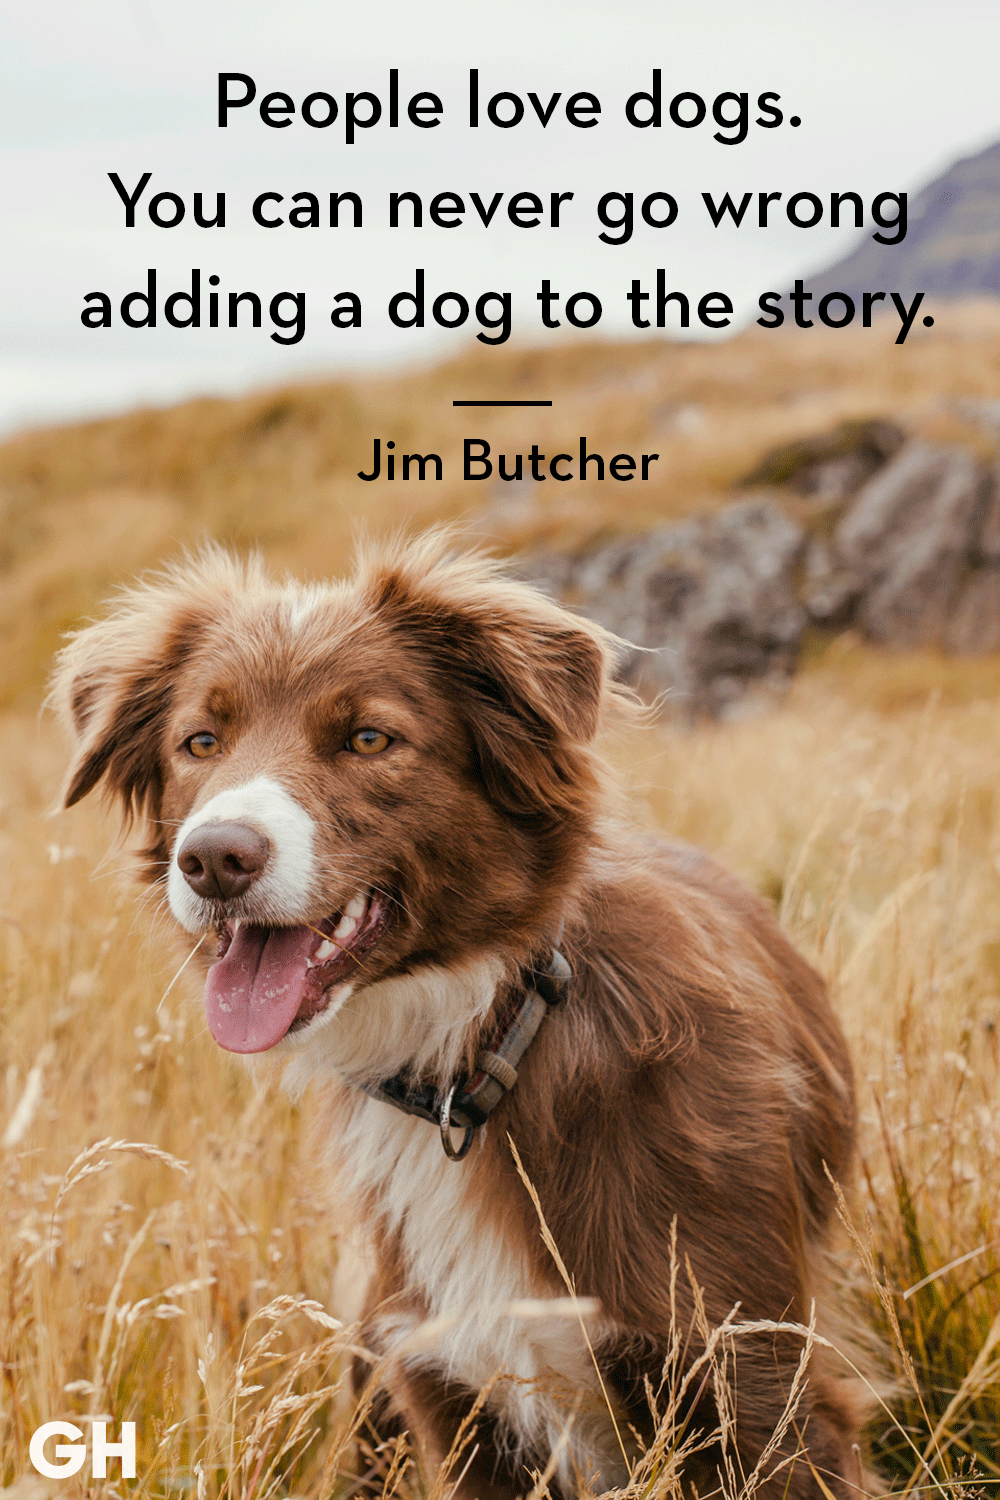 c316f2d9 30 Dog Quotes That Every Animal Lover Will Relate To - Best Dog Quotes